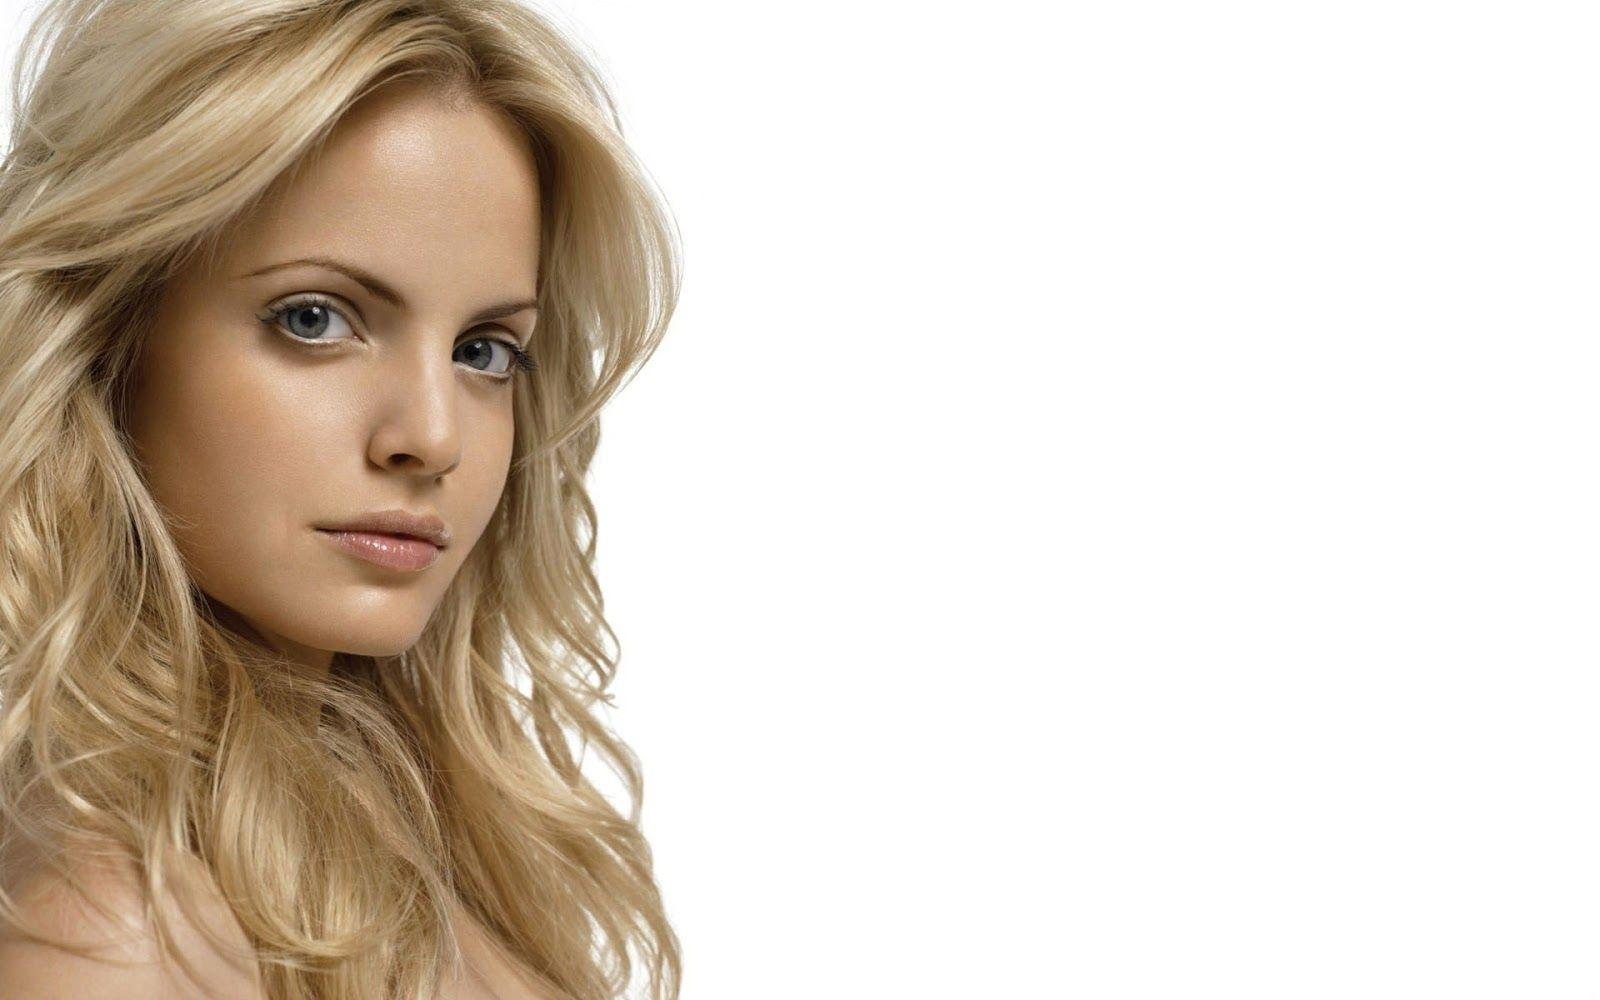 Mena Suvary Blonde American Beauty HD Wallpapers